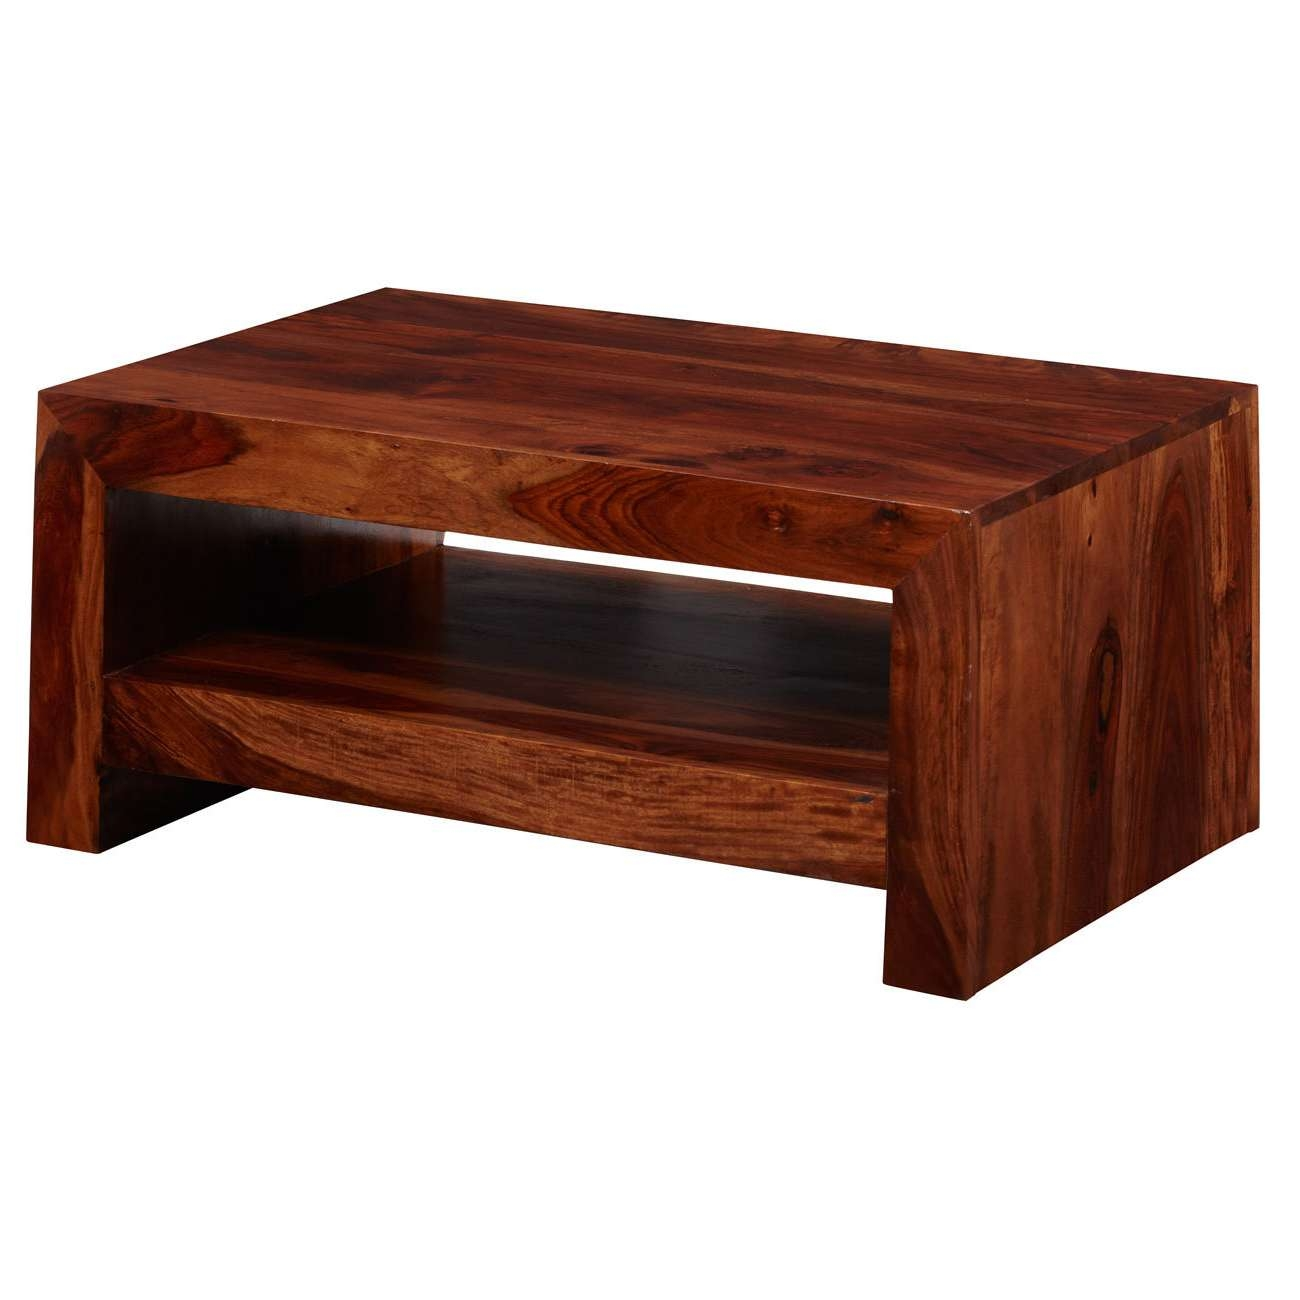 Coffee Tables Ideas: Top Hardwood Coffee Table Plans Sculpture In Most Up To Date Quality Coffee Tables (View 5 of 20)